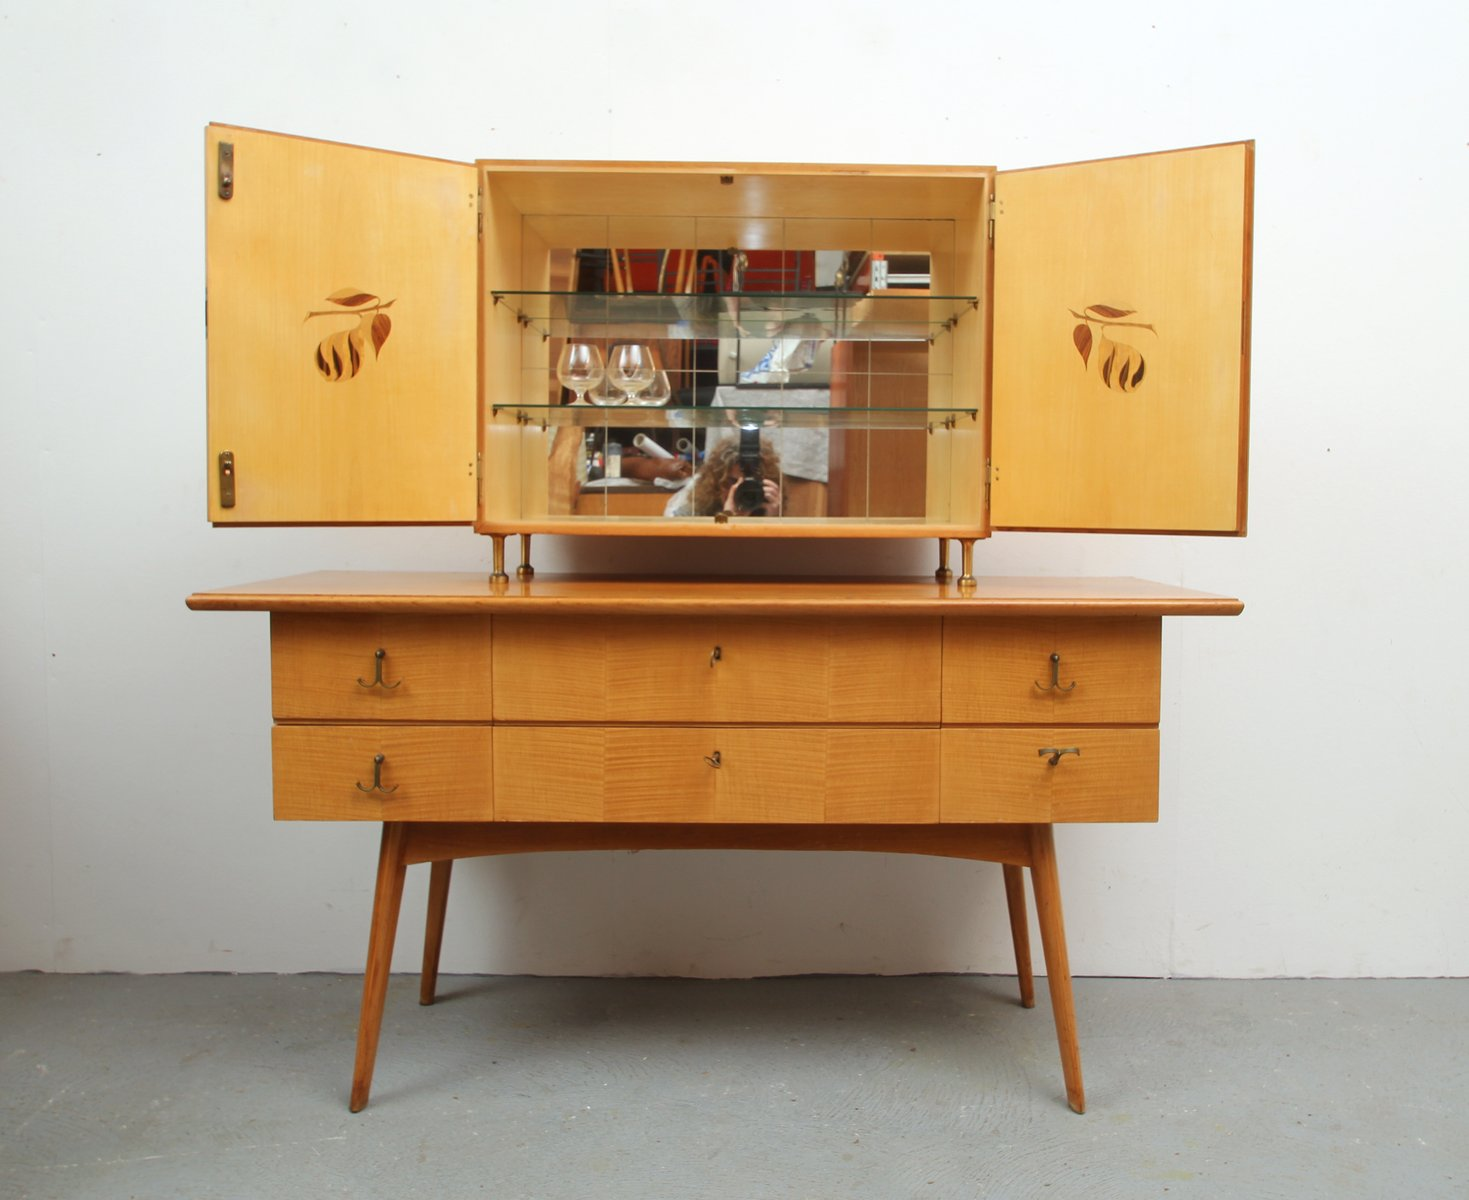 Cherry Wood Sideboard and Bar Cabinet, 1950s - Cherry Wood Sideboard And Bar Cabinet, 1950s For Sale At Pamono